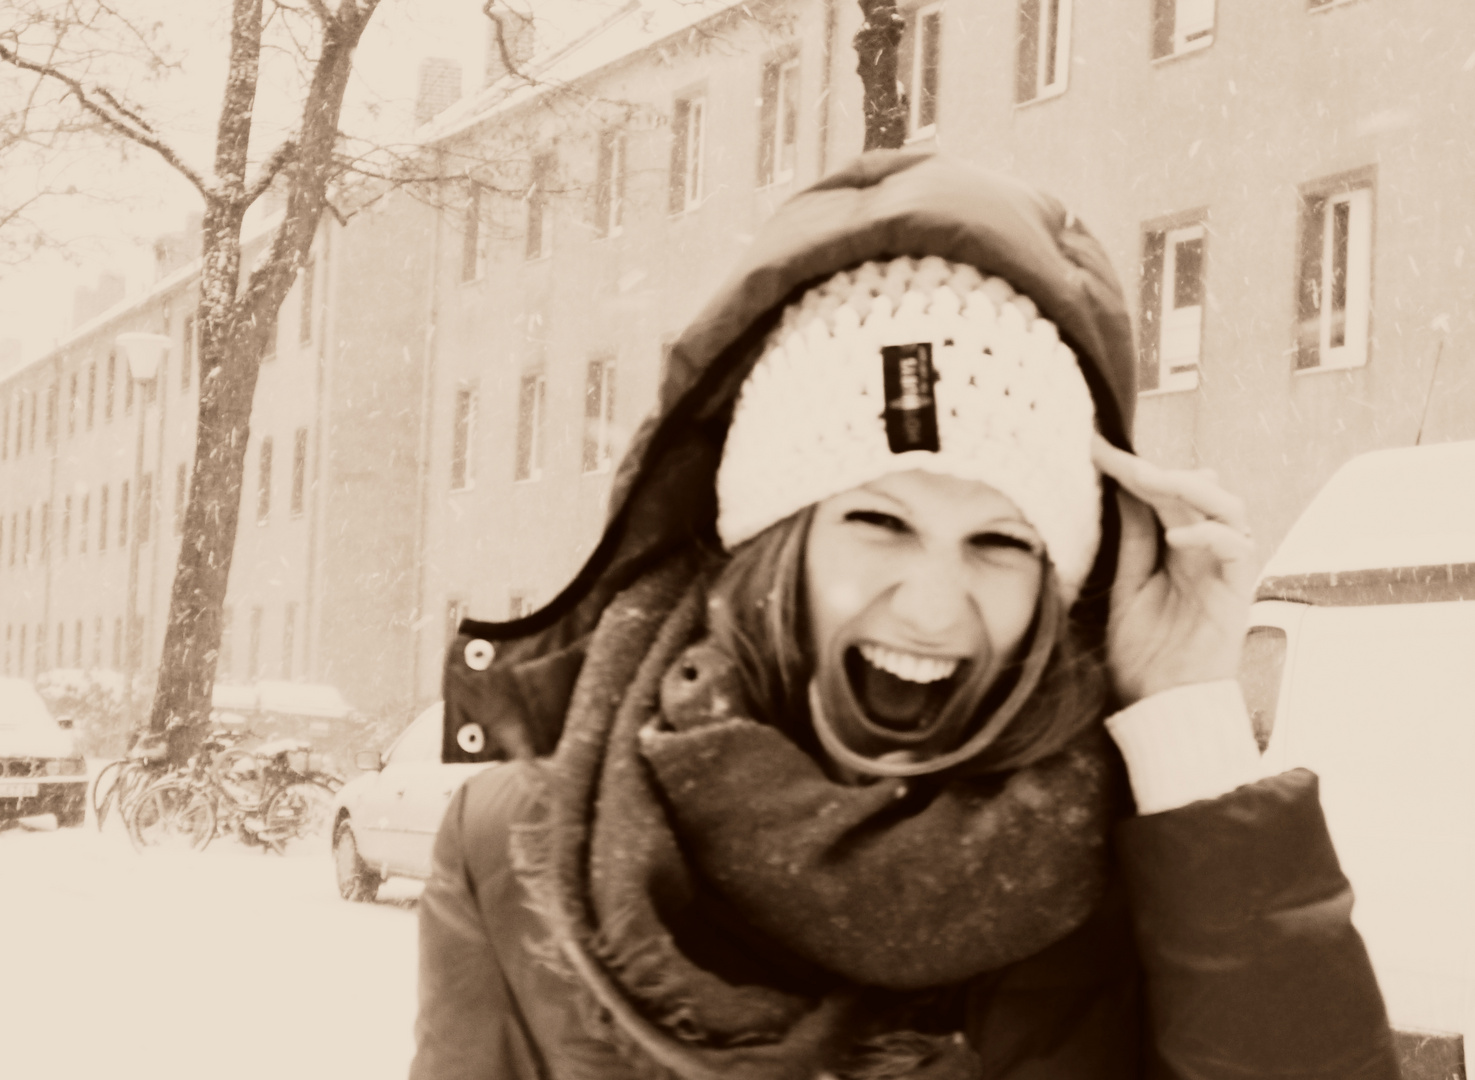 Nothing else matters when you´re smiling :)